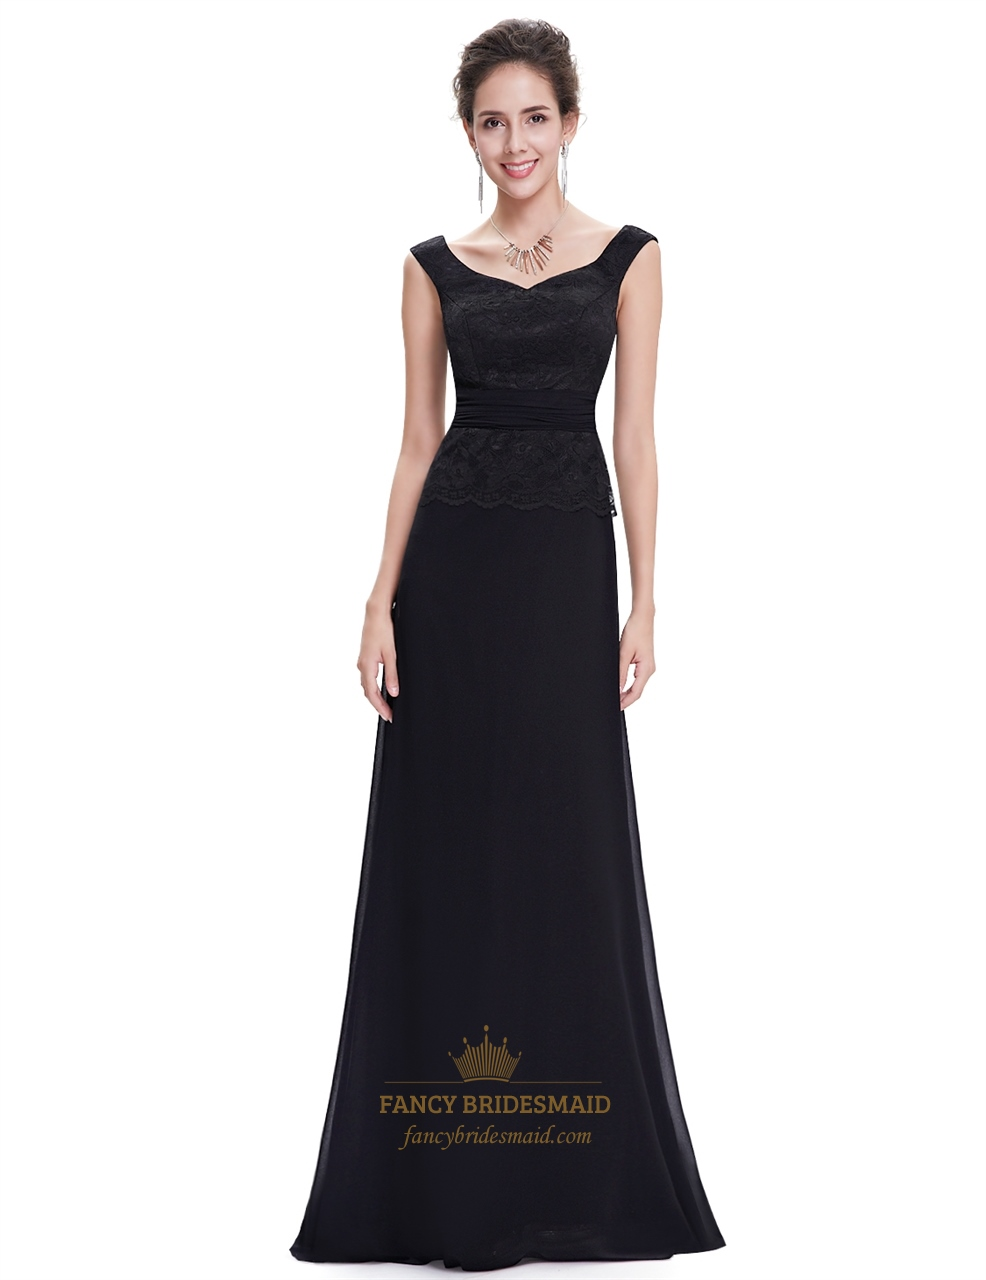 Black chiffon long bridesmaid dresses with beaded lace for Black bridesmaids dresses wedding